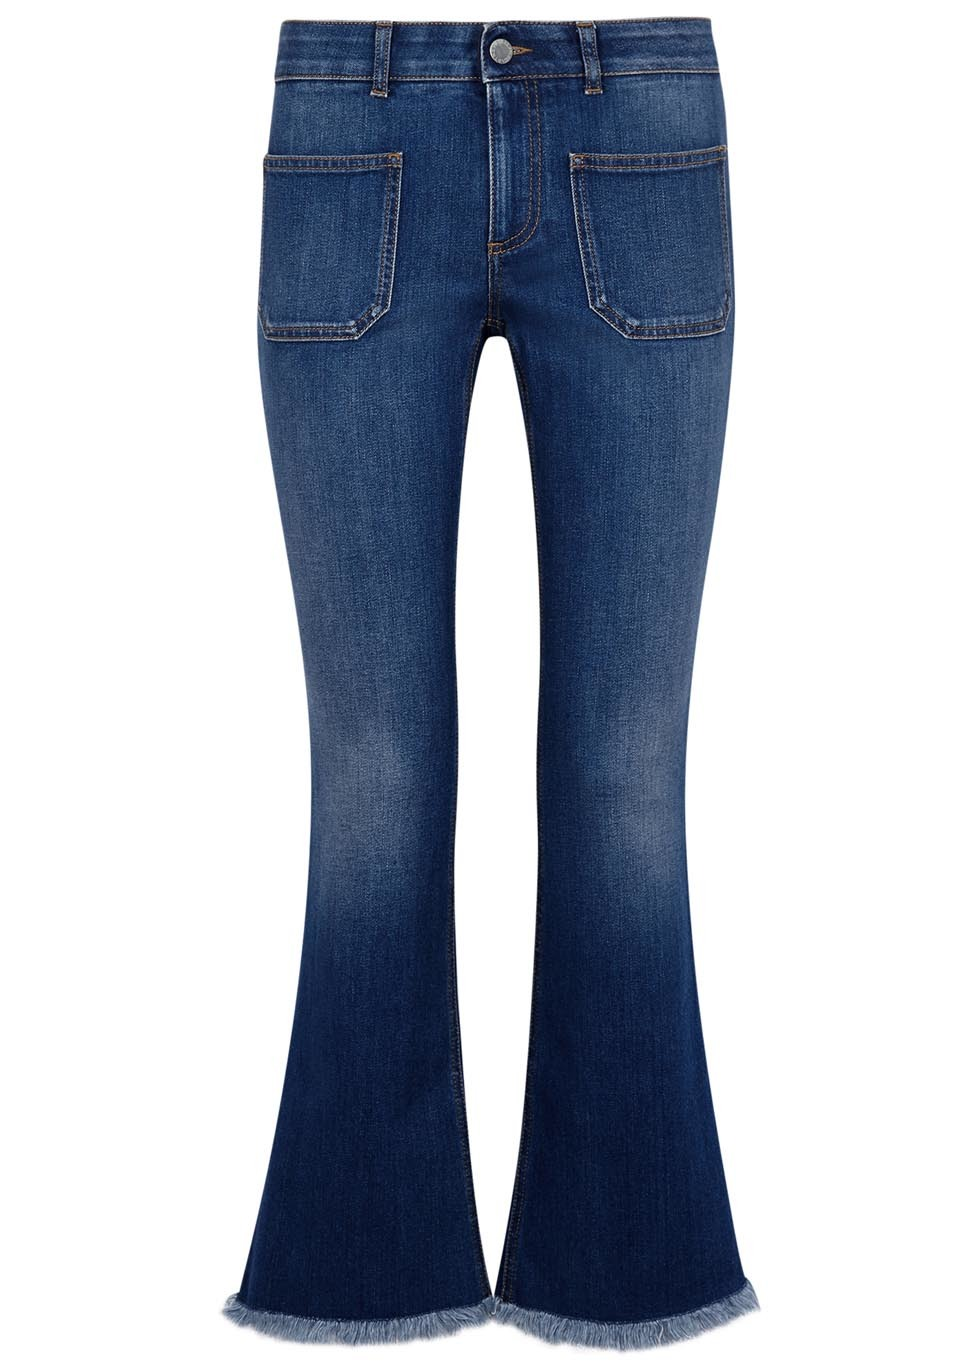 Blue Flared Denim Jeans - style: bootcut; length: standard; pattern: plain; waist: mid/regular rise; predominant colour: navy; occasions: casual; fibres: cotton - stretch; texture group: denim; pattern type: fabric; season: s/s 2016; wardrobe: basic